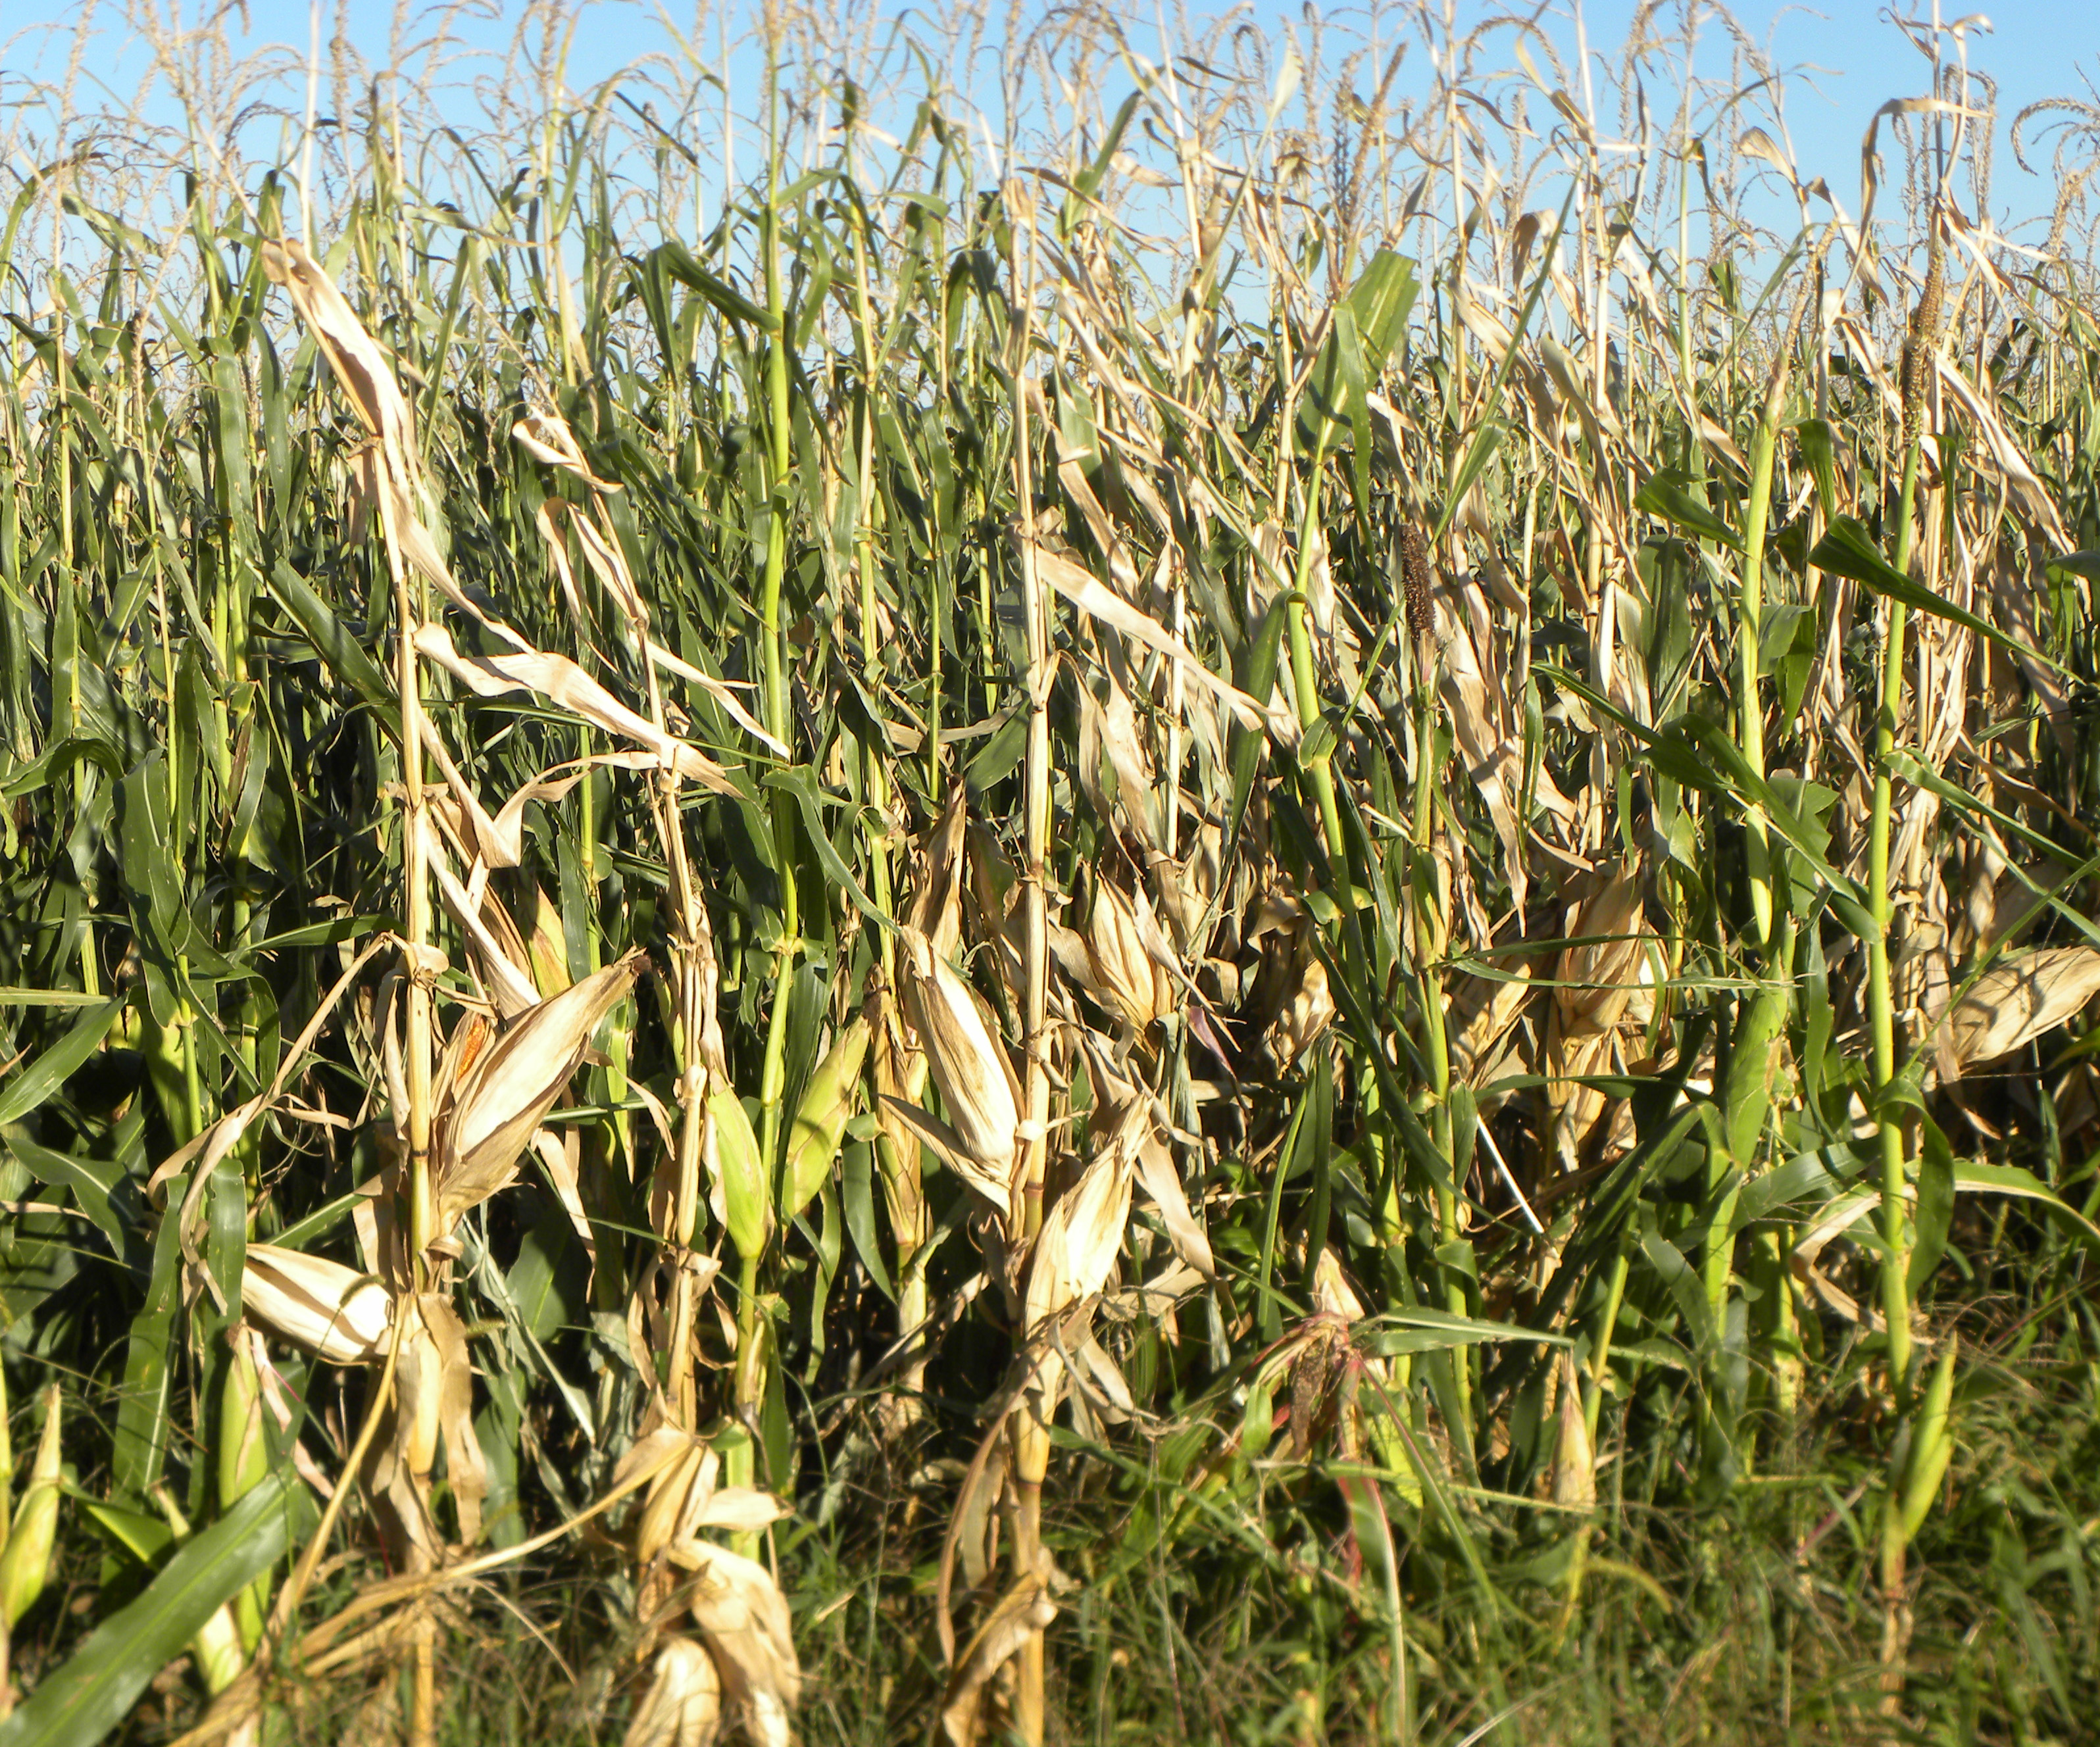 Corn field exhibiting stalk rot symptoms